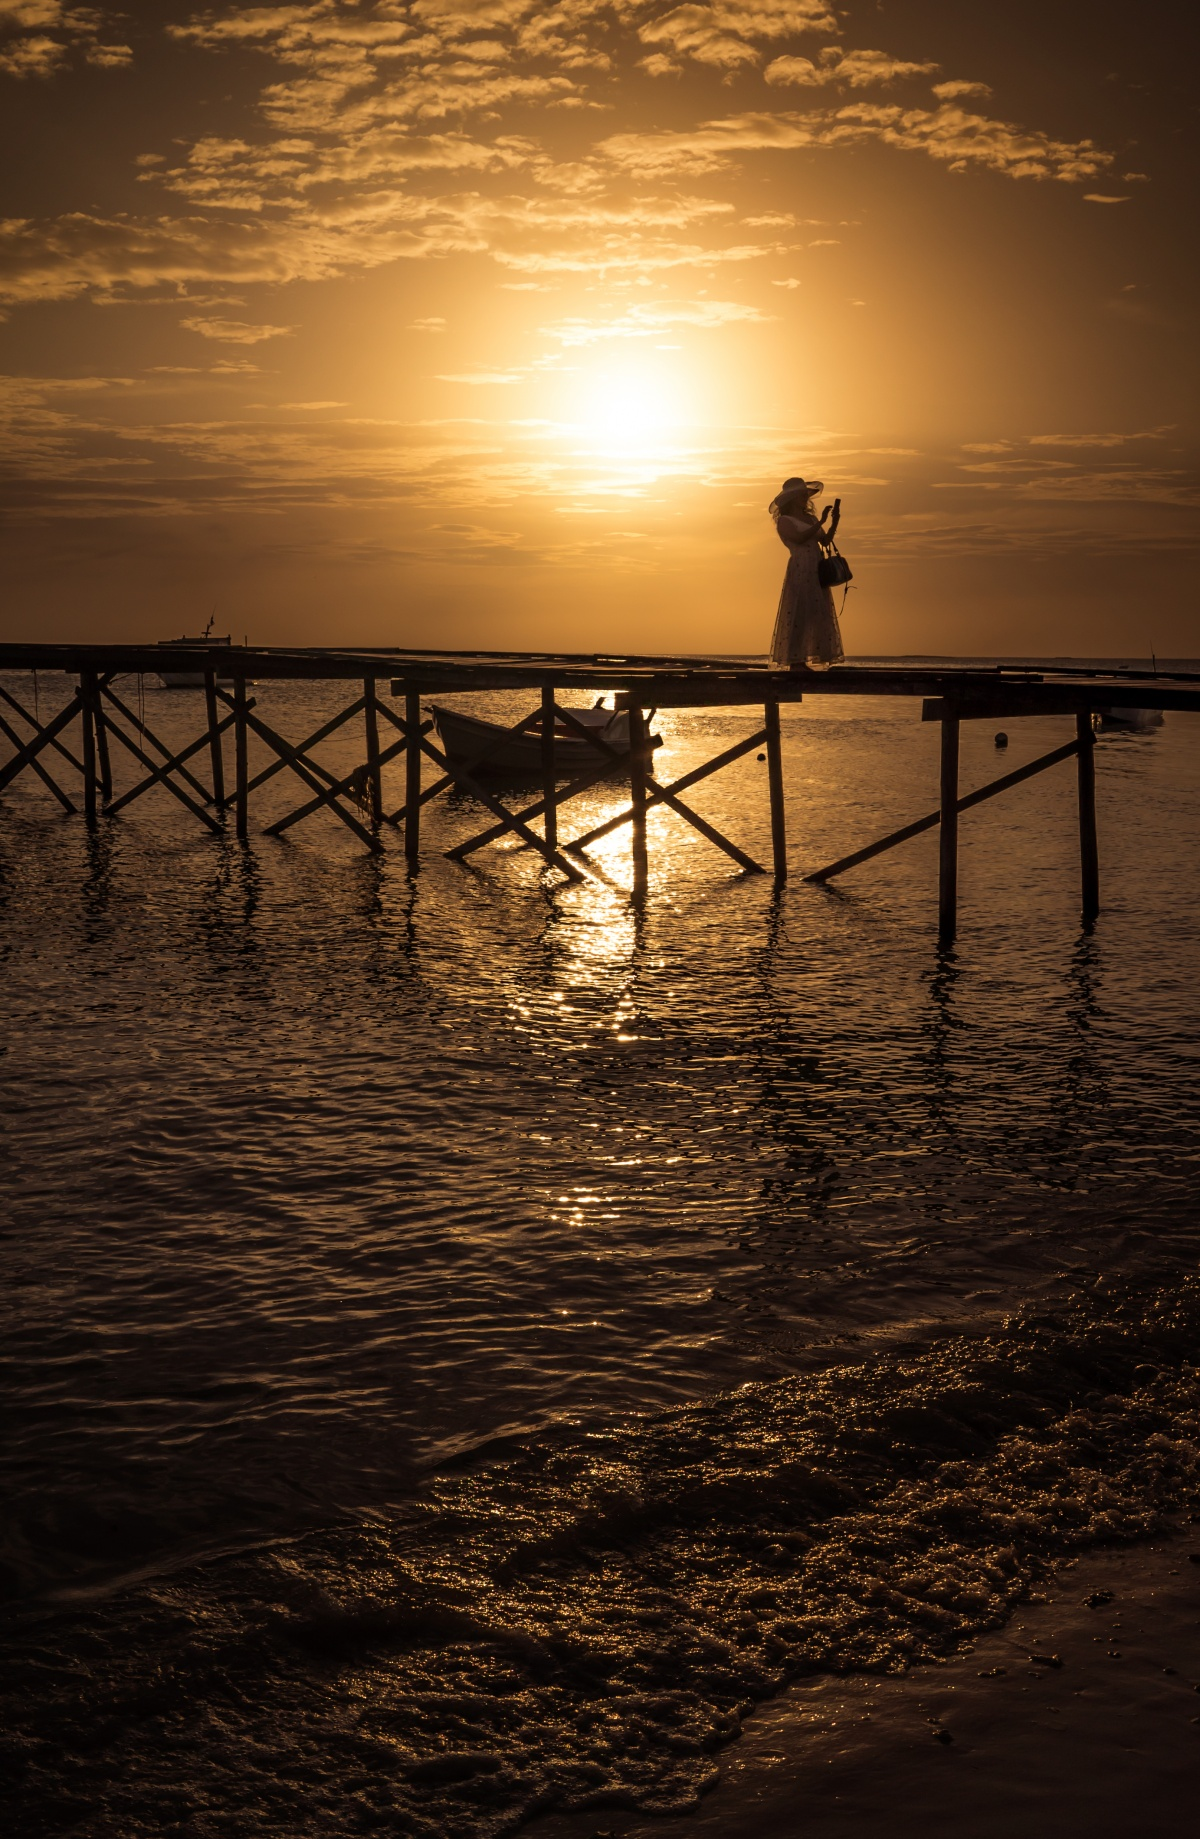 Photo of sunset over pier while picturisque lady is taking a selfie